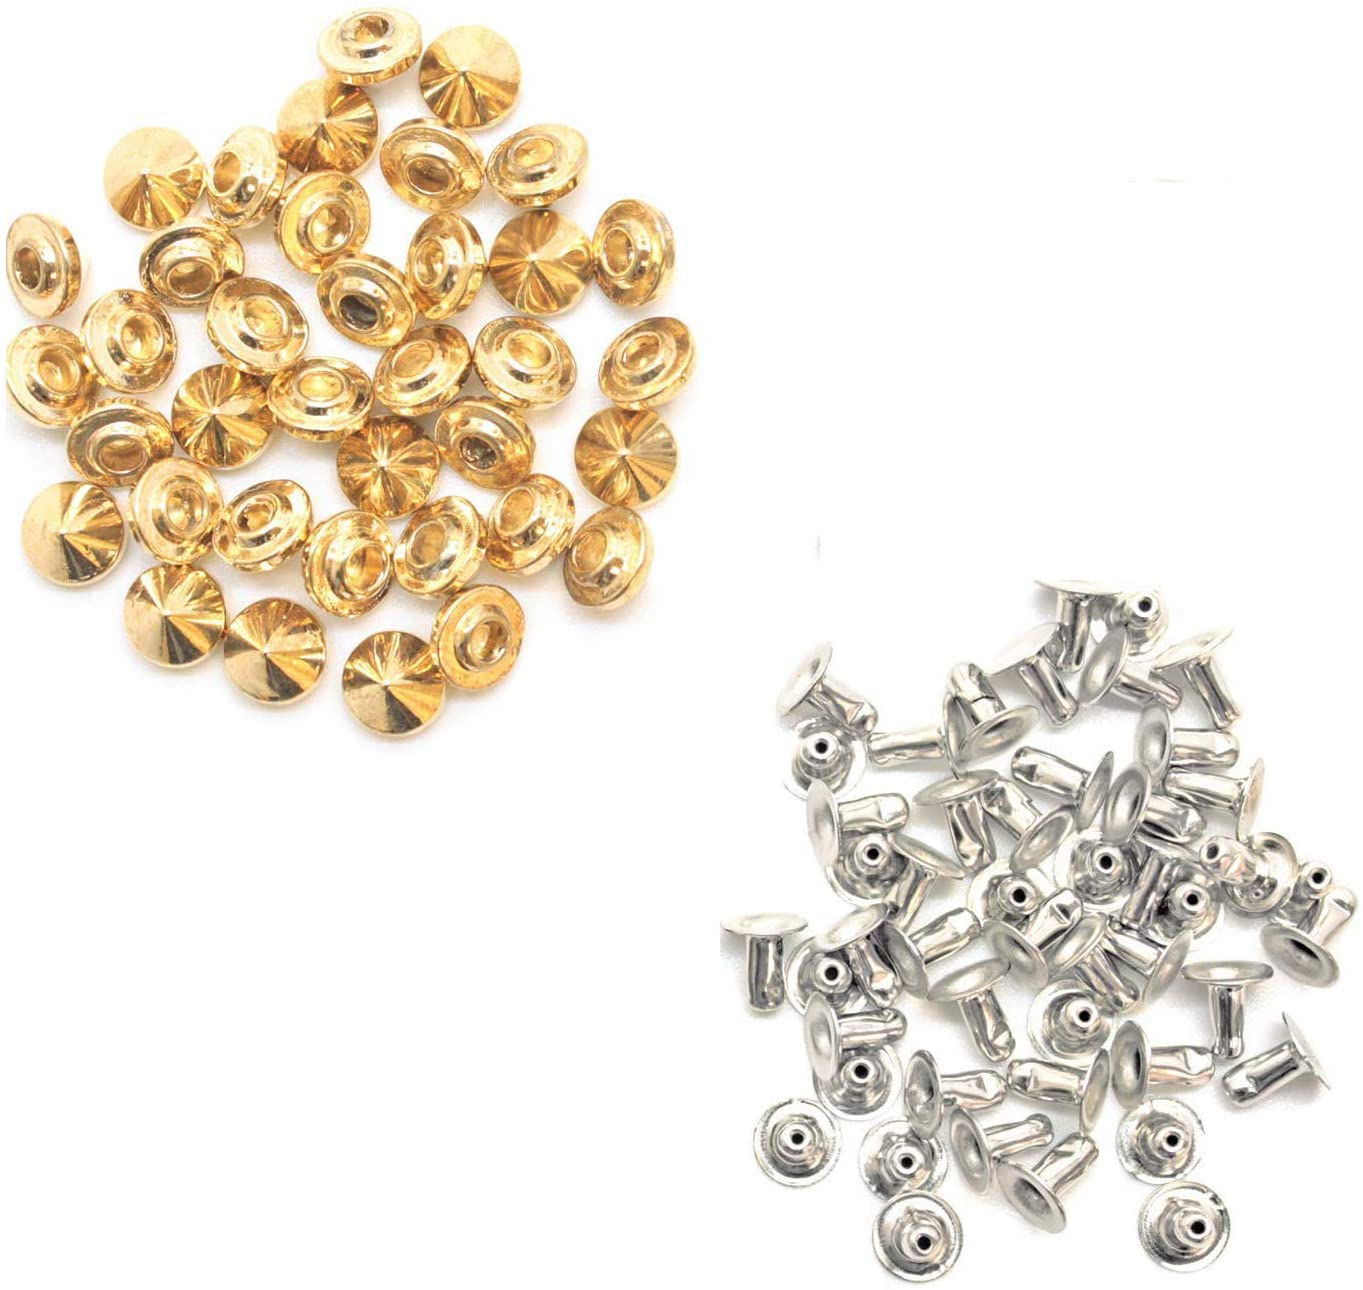 100 X 9Mm X 6Mm Brass Punk Cone Spike Studs with Pins Belt Bag Clothing Leather Craft